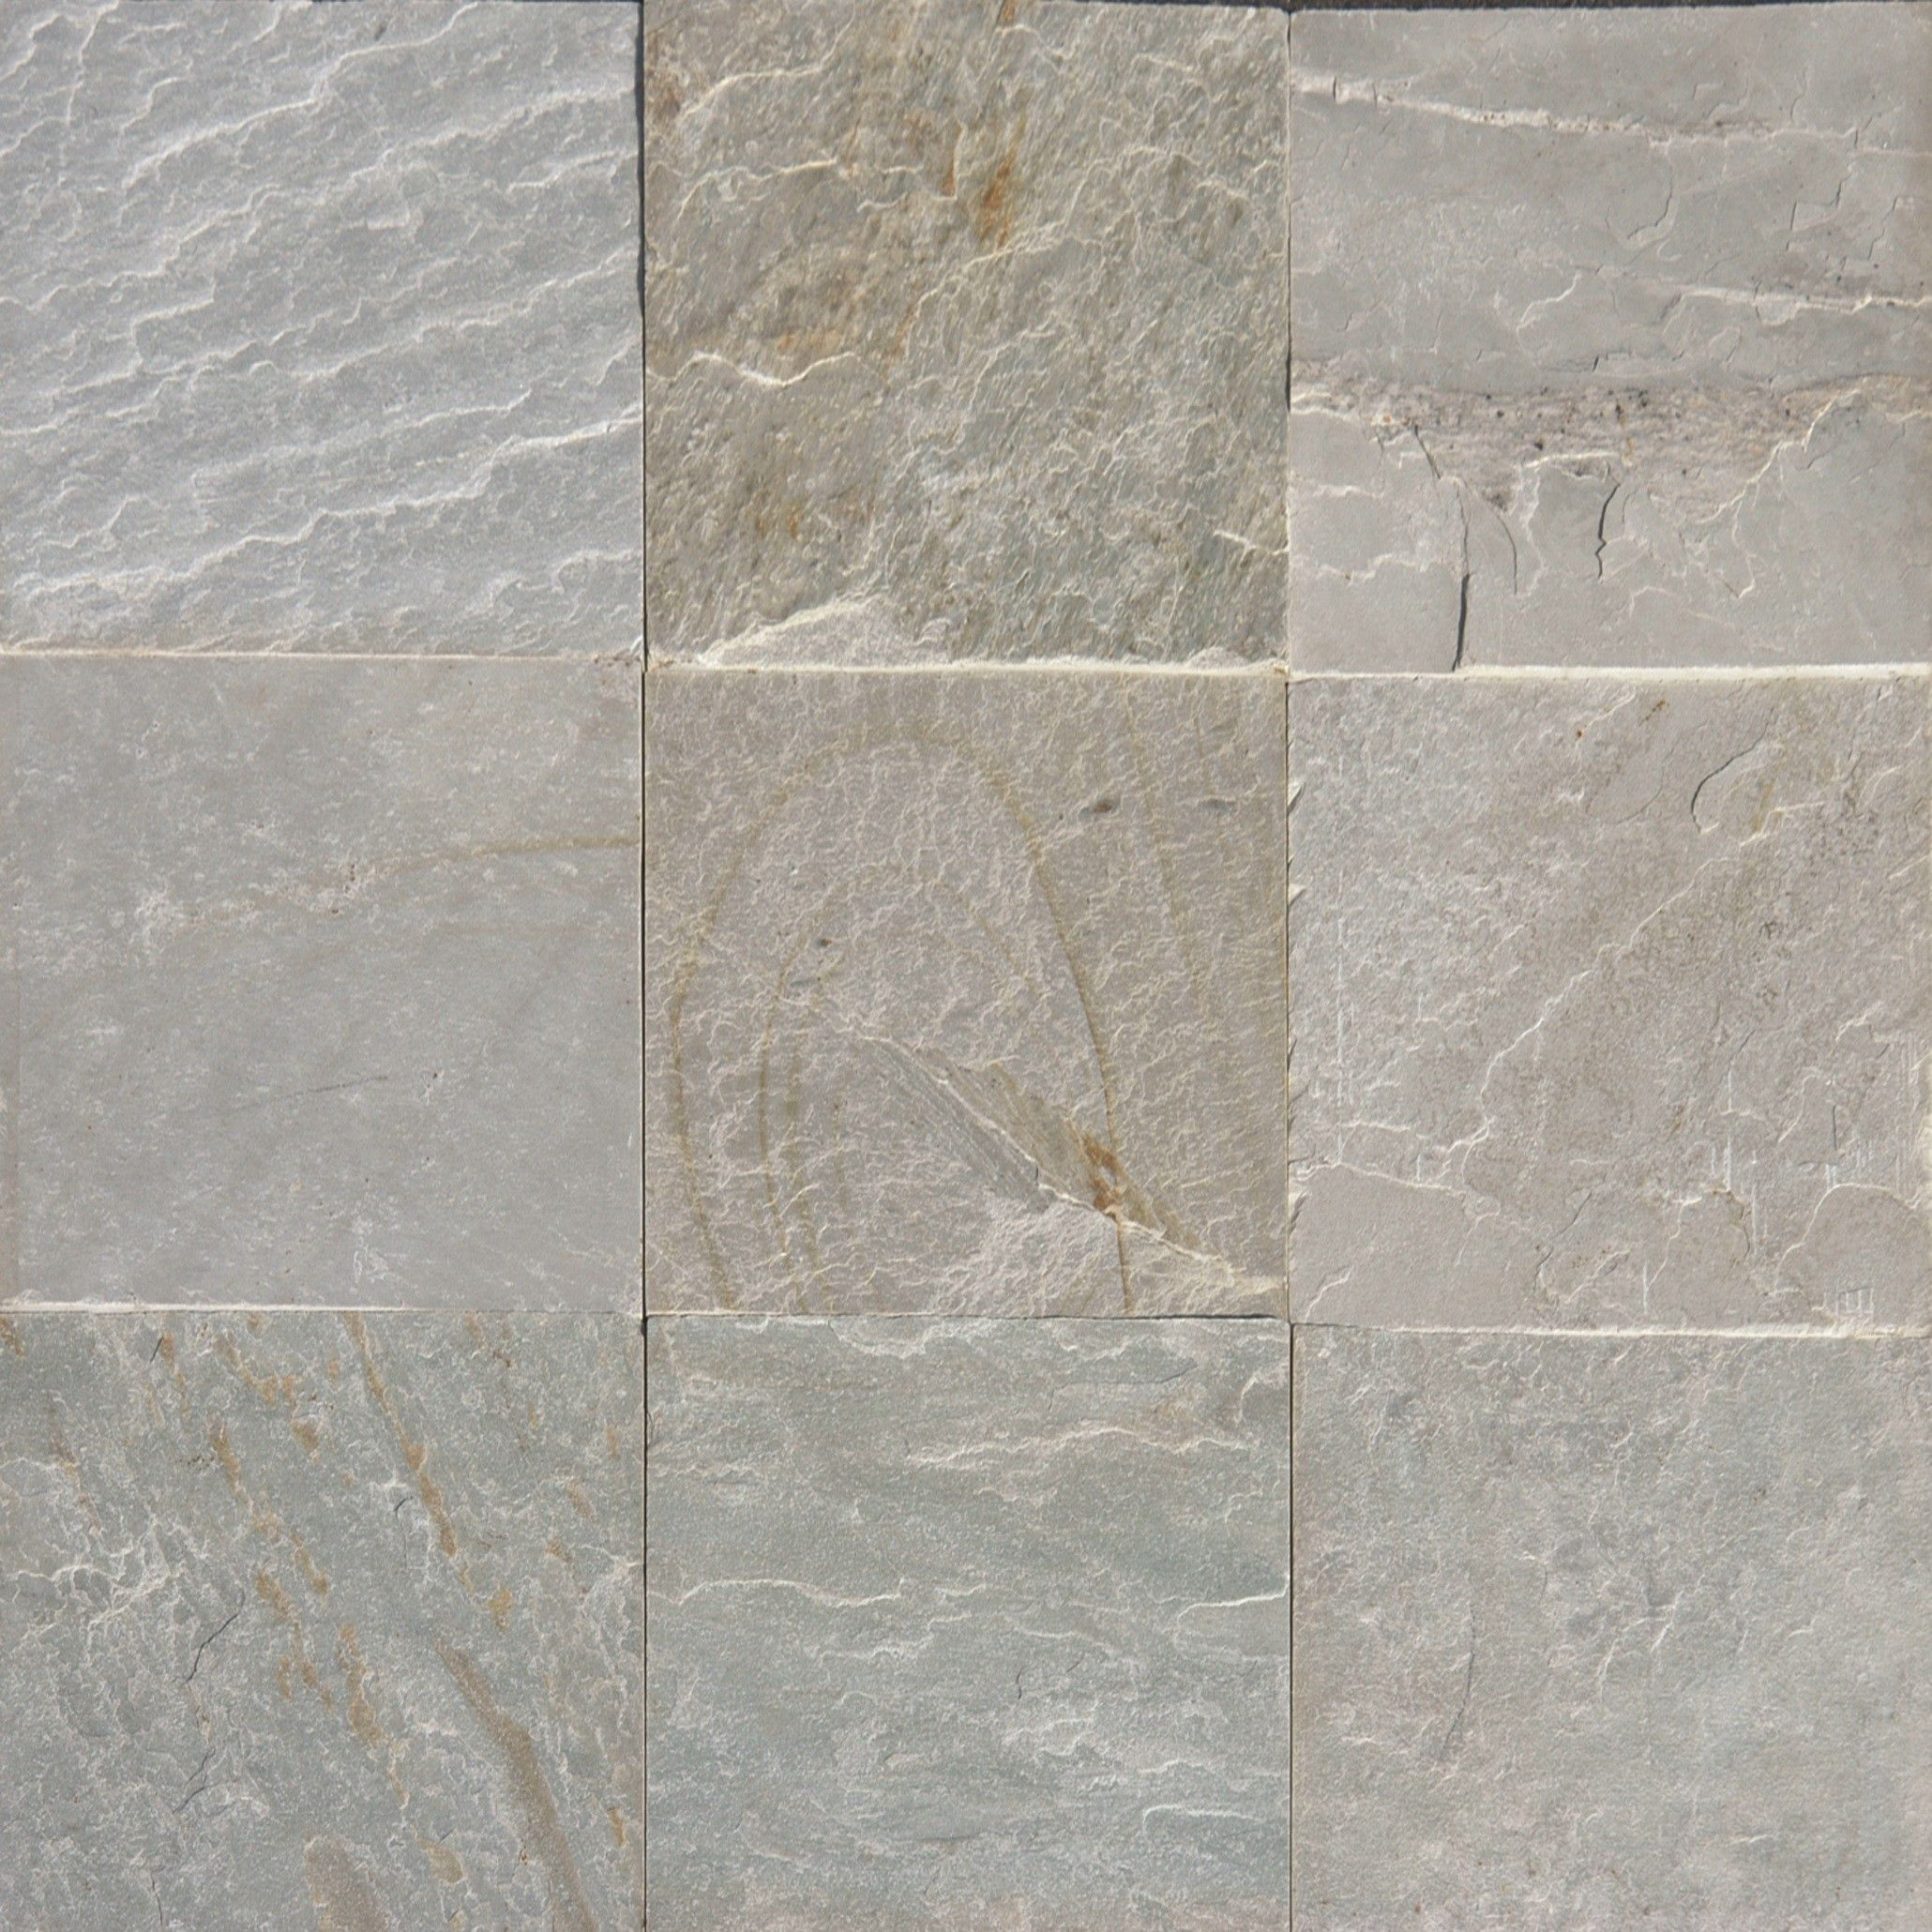 455 sf ice white quartzite gauged 12x12 bath tile and other ice white quartzite tile cleft gauged ice white quartzite tile cleft gauged primary colors graywhite other industry namesaka himalayan snow dailygadgetfo Gallery